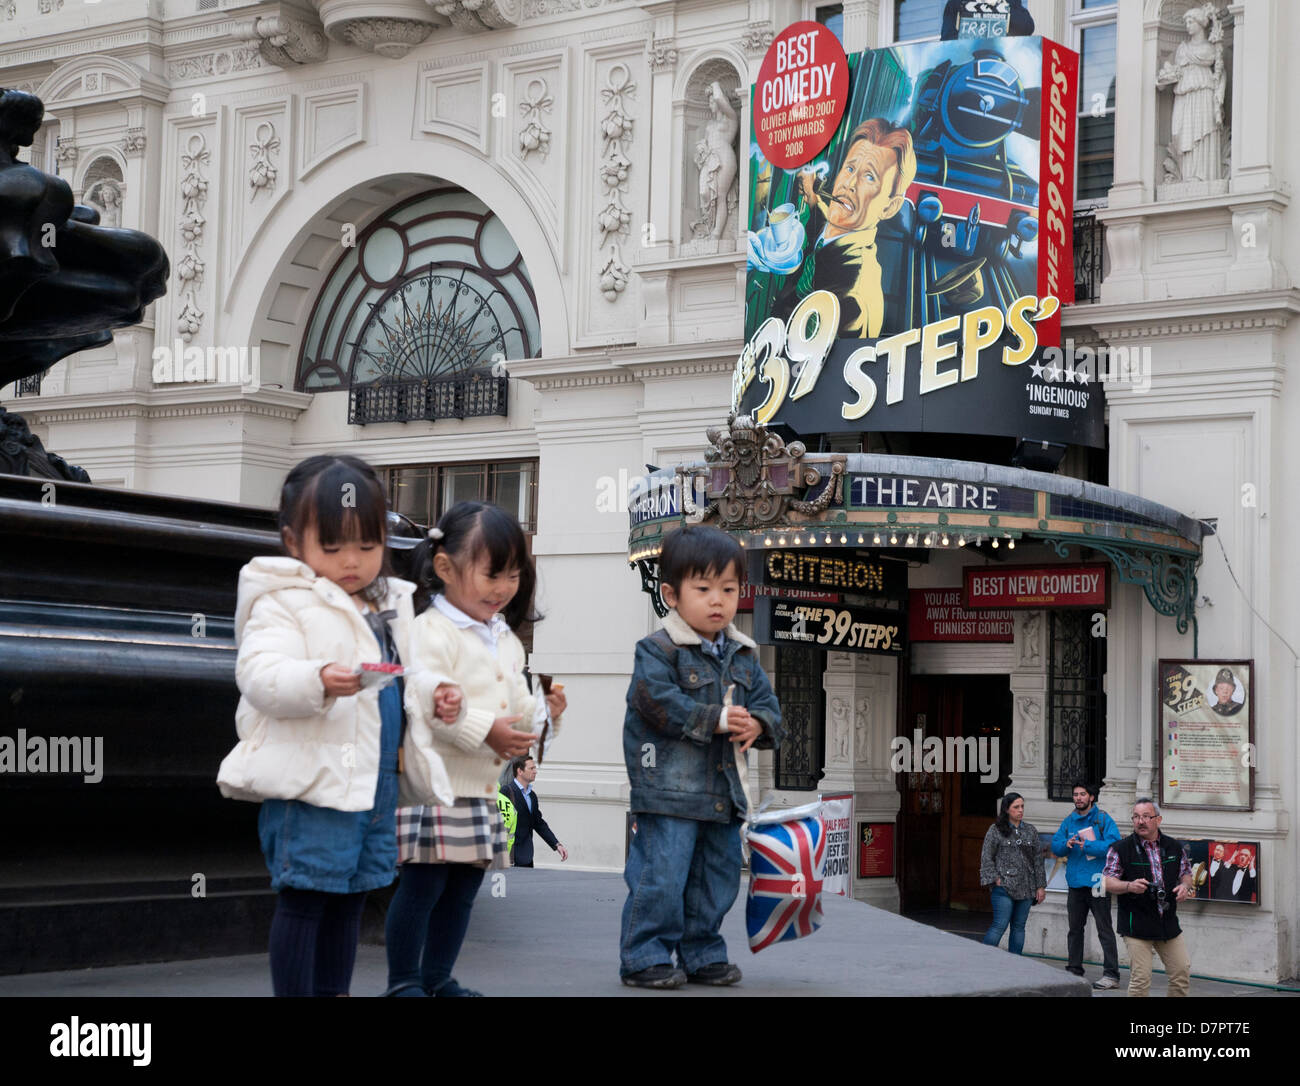 Asiatic children outside the Criterion Theatre, West End, London, England, United Kingdom - Stock Image